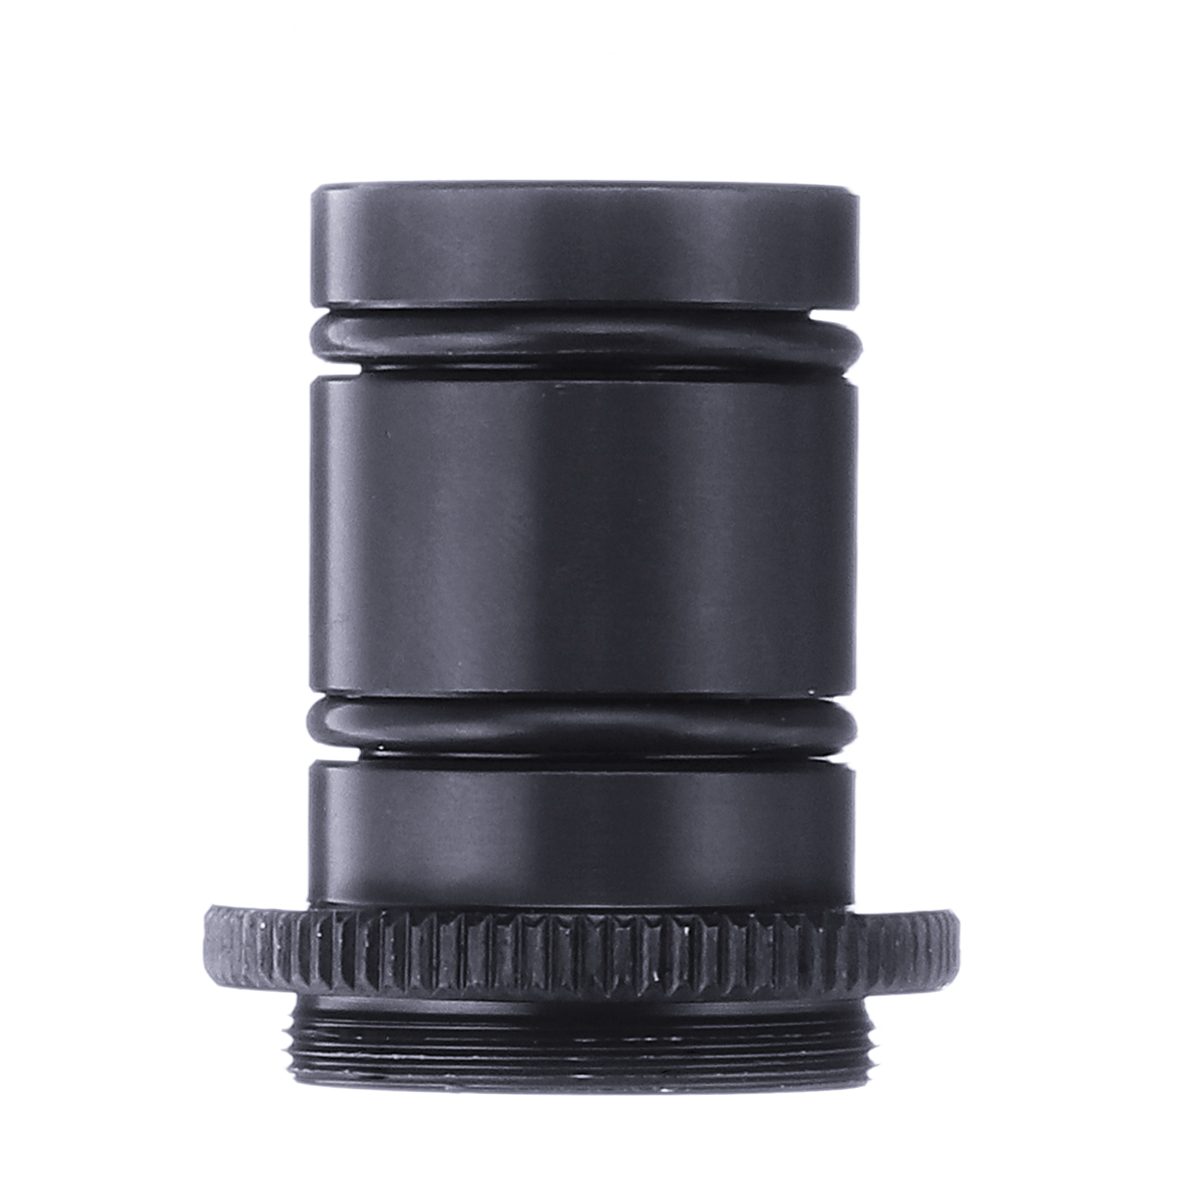 Microscope Adapter Lens,0.5X C-Mount 30//30.5mm Reduction Lens Microscope Eyepiece Adapter 23.2mm Connector for Microscope CCD Camera Eyepiece Lens